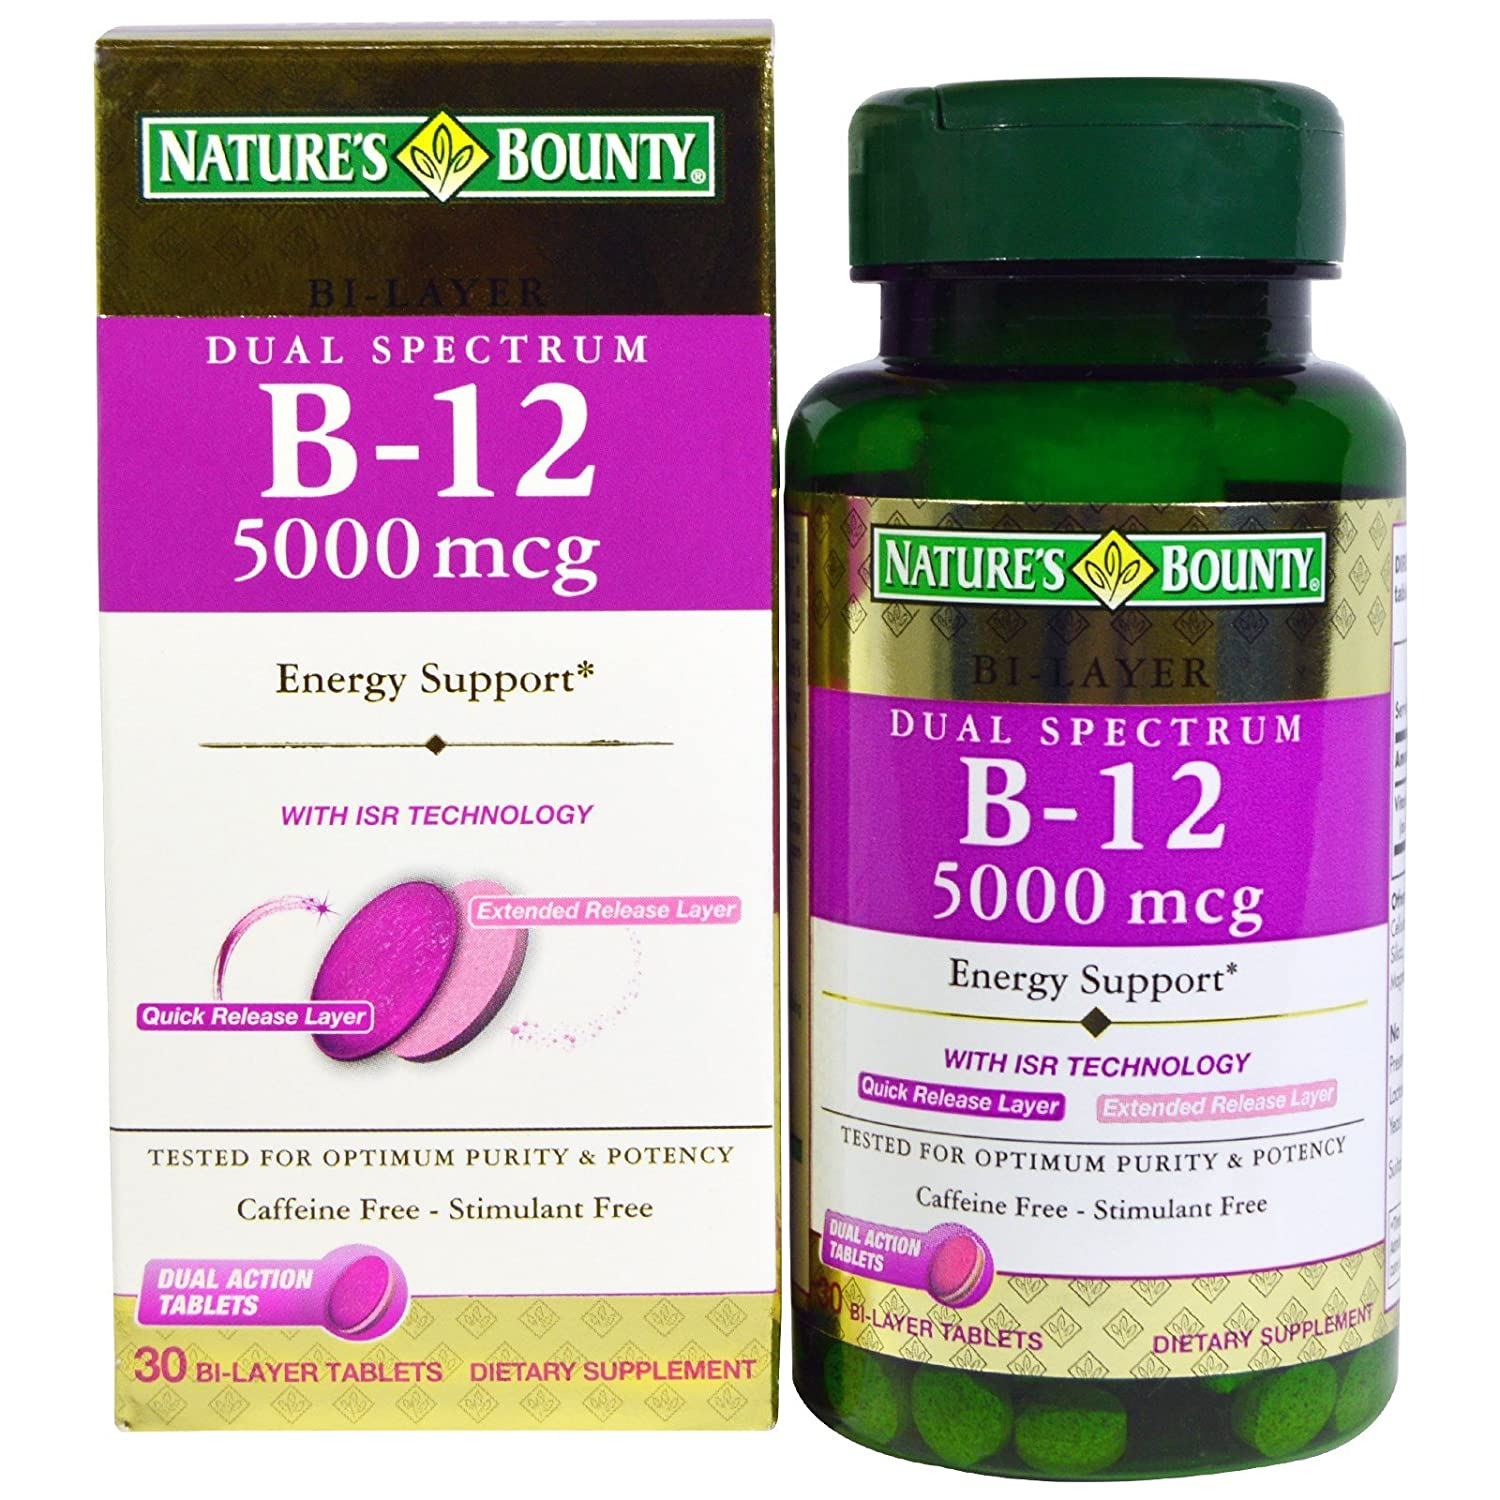 Nature s Bounty, Dual Spectrum B-12, 5000 mcg, 30 Bi-Layer Tablets – 2pc